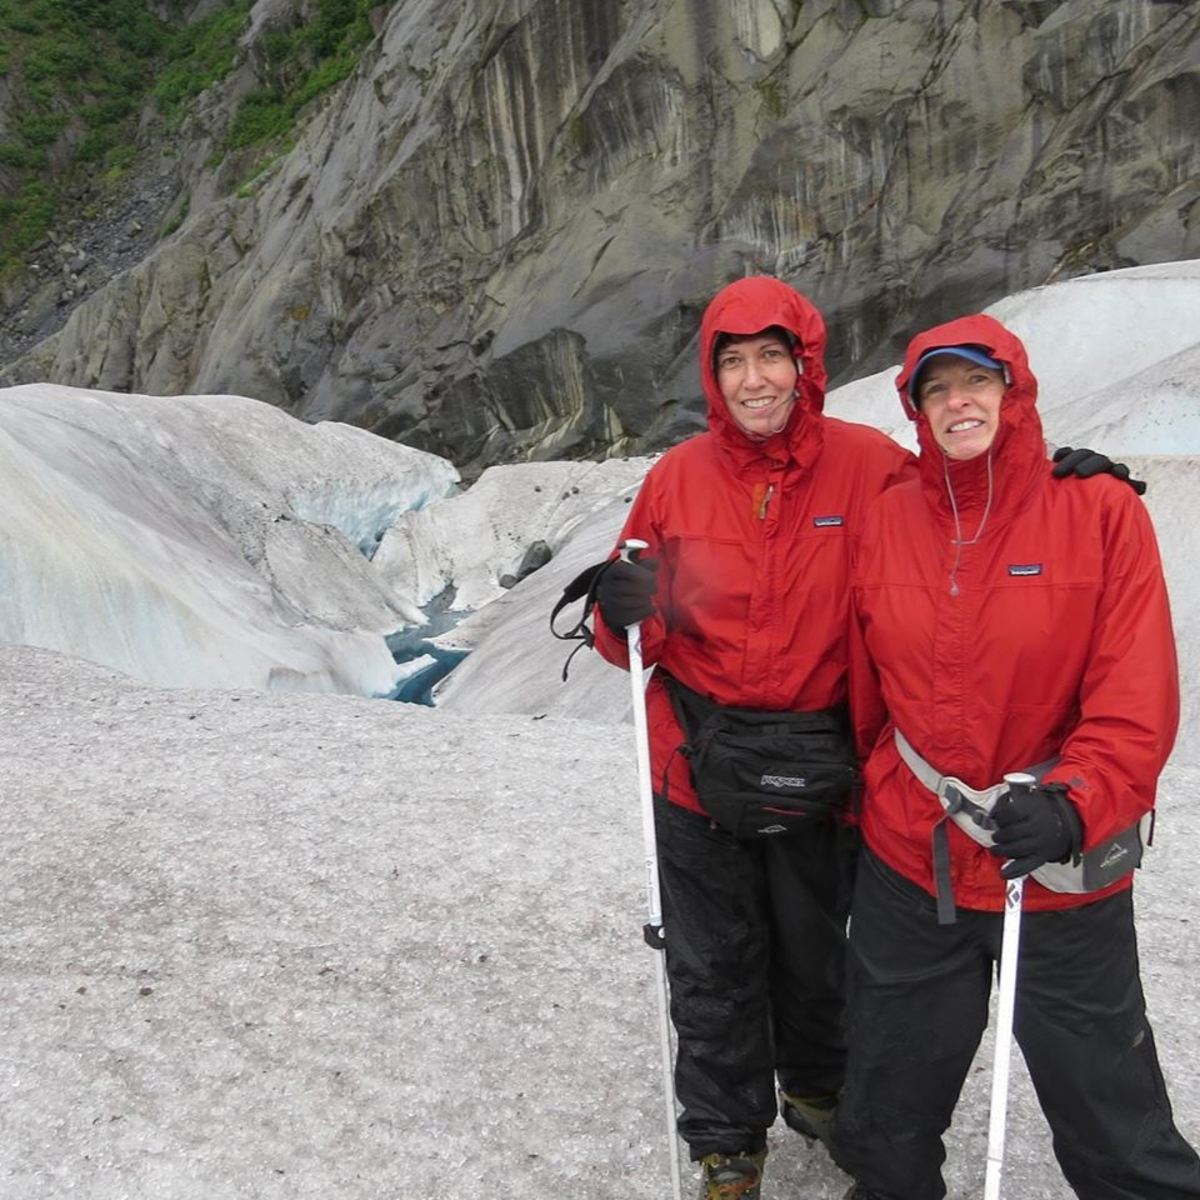 On a glacier in Alaska!